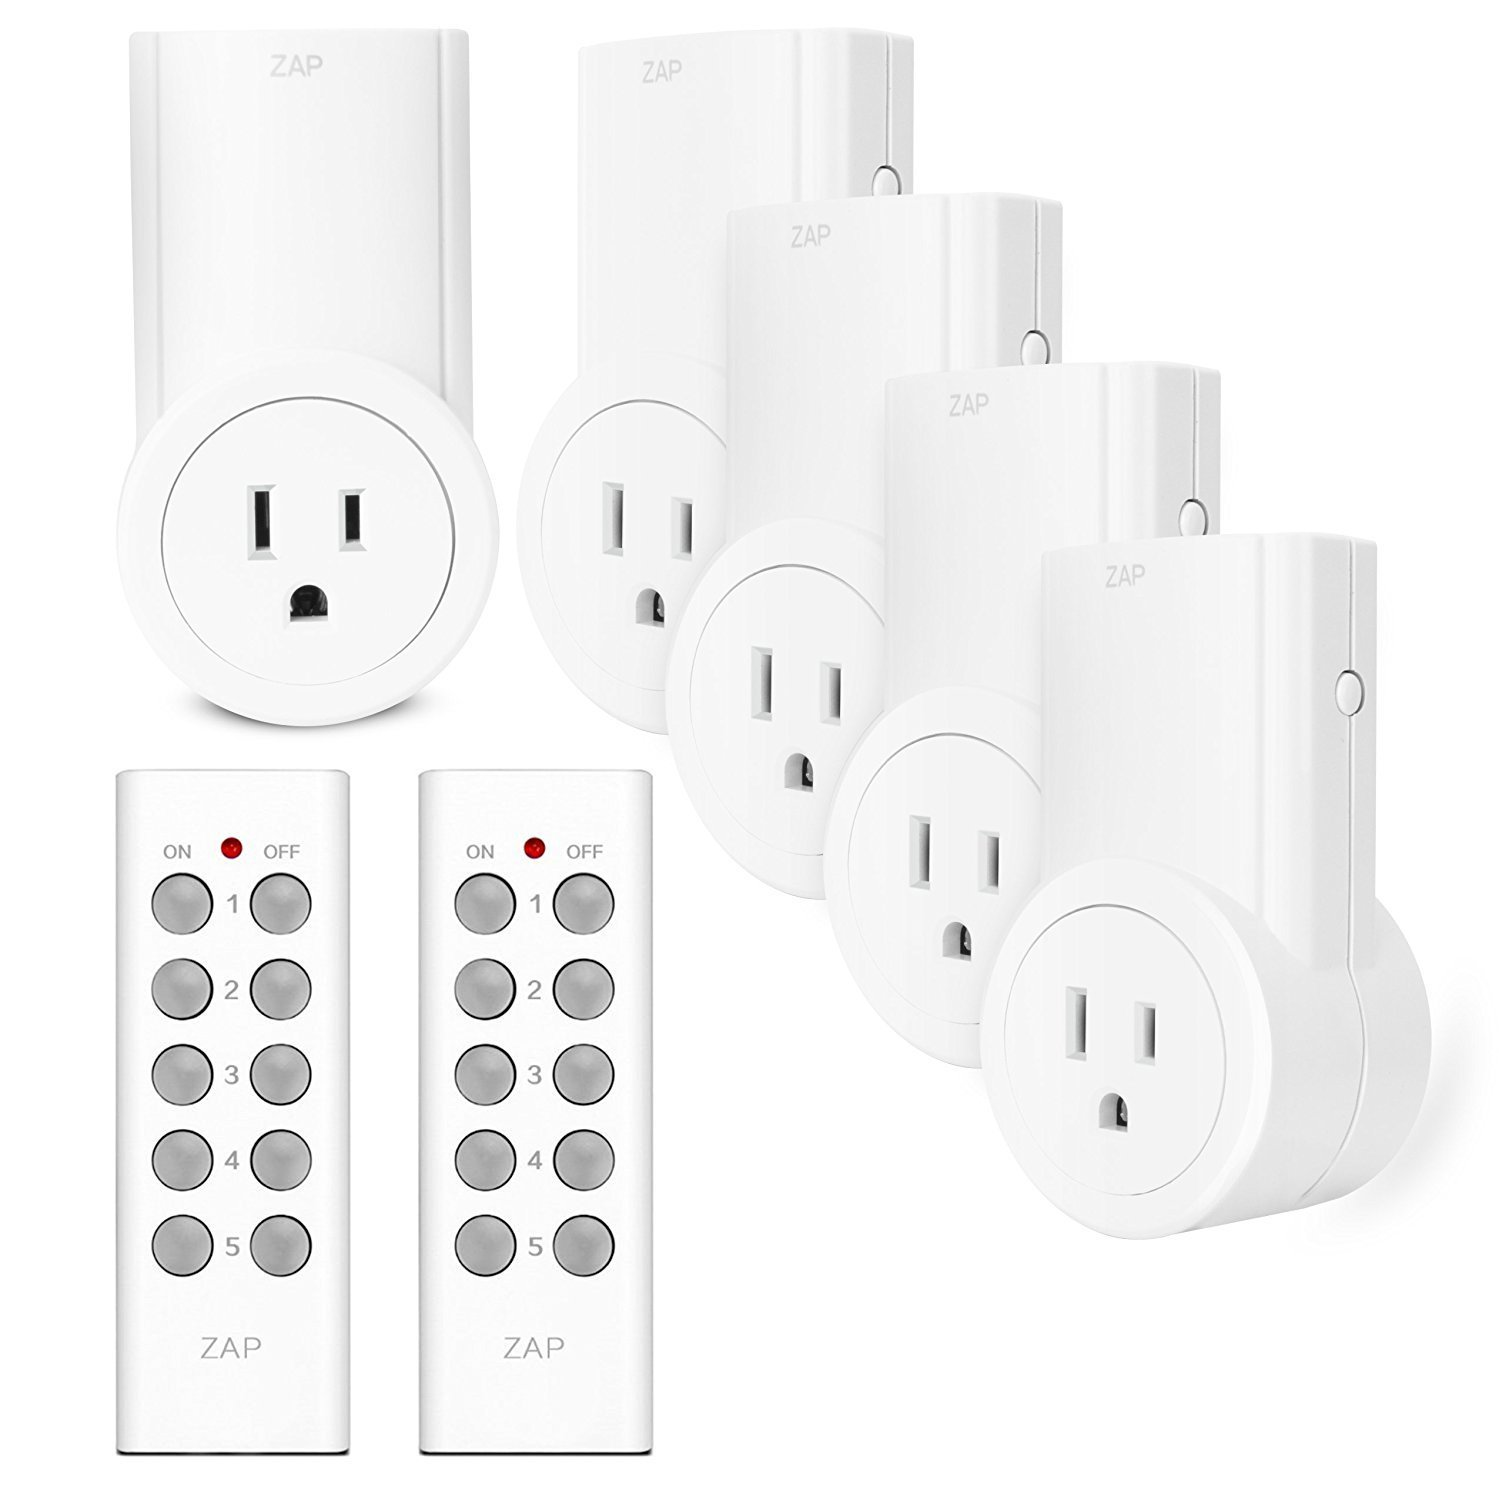 Etekcity Wireless Electrical Outlet Switch